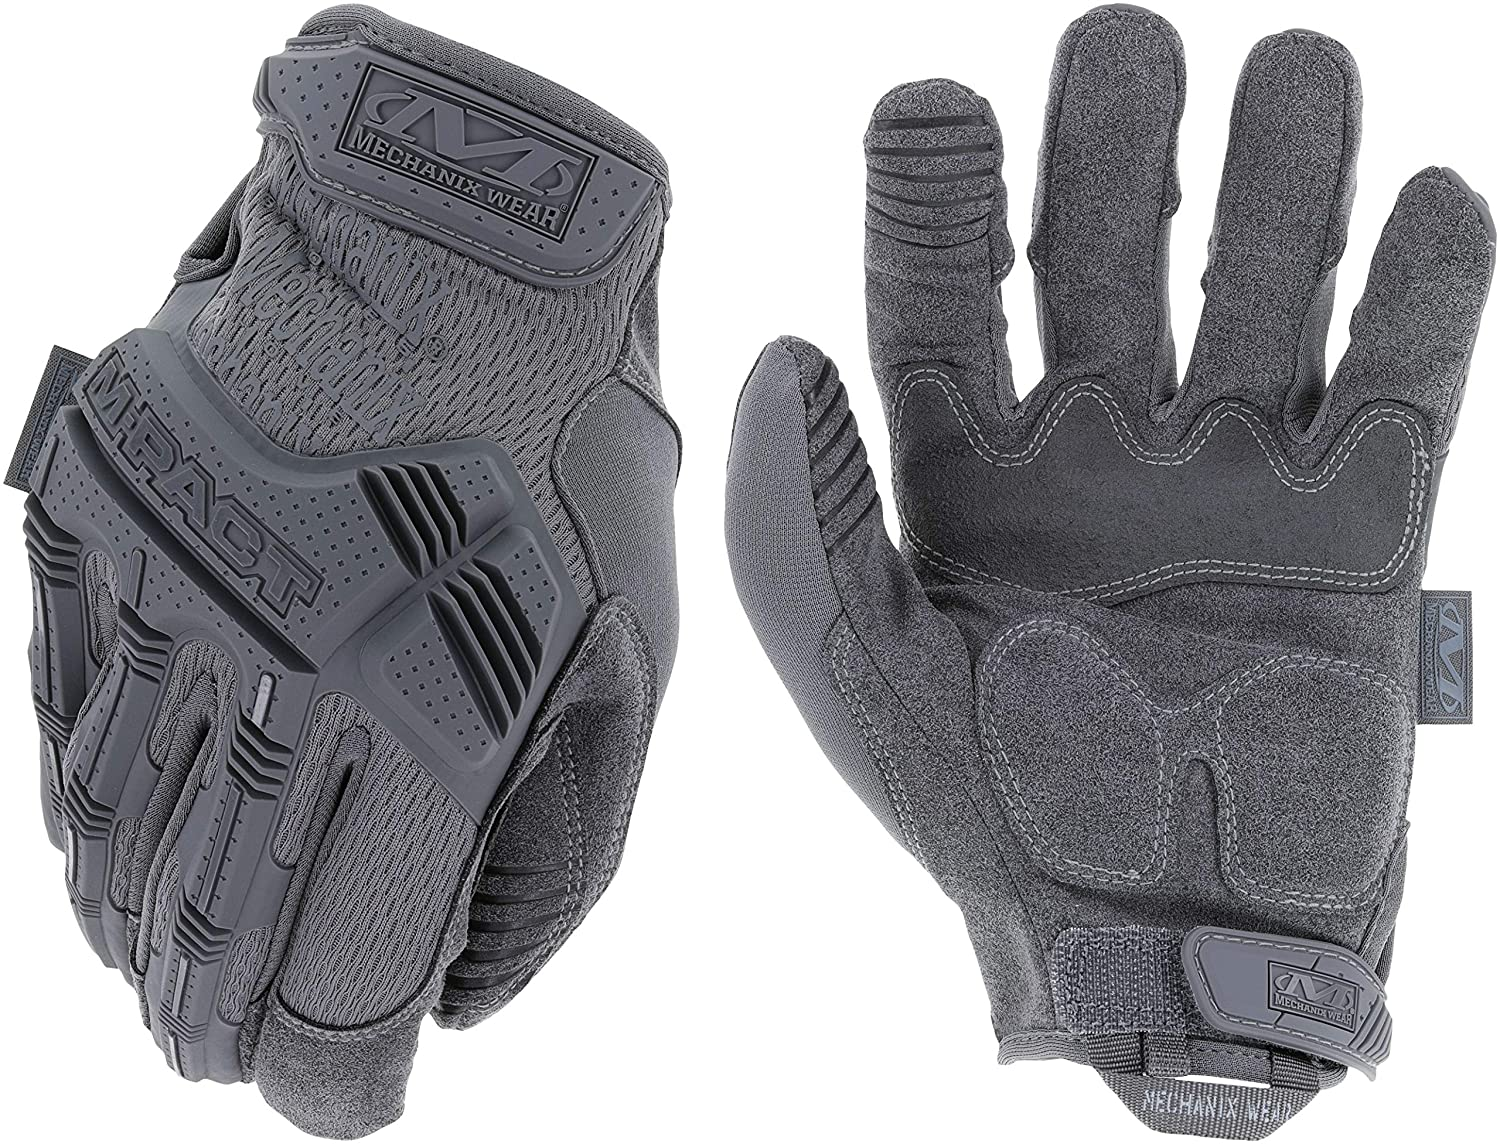 Mechanix Wear - M-Pact Wolf Grey Tactical Gloves (Large, Grey) MPT-88-010